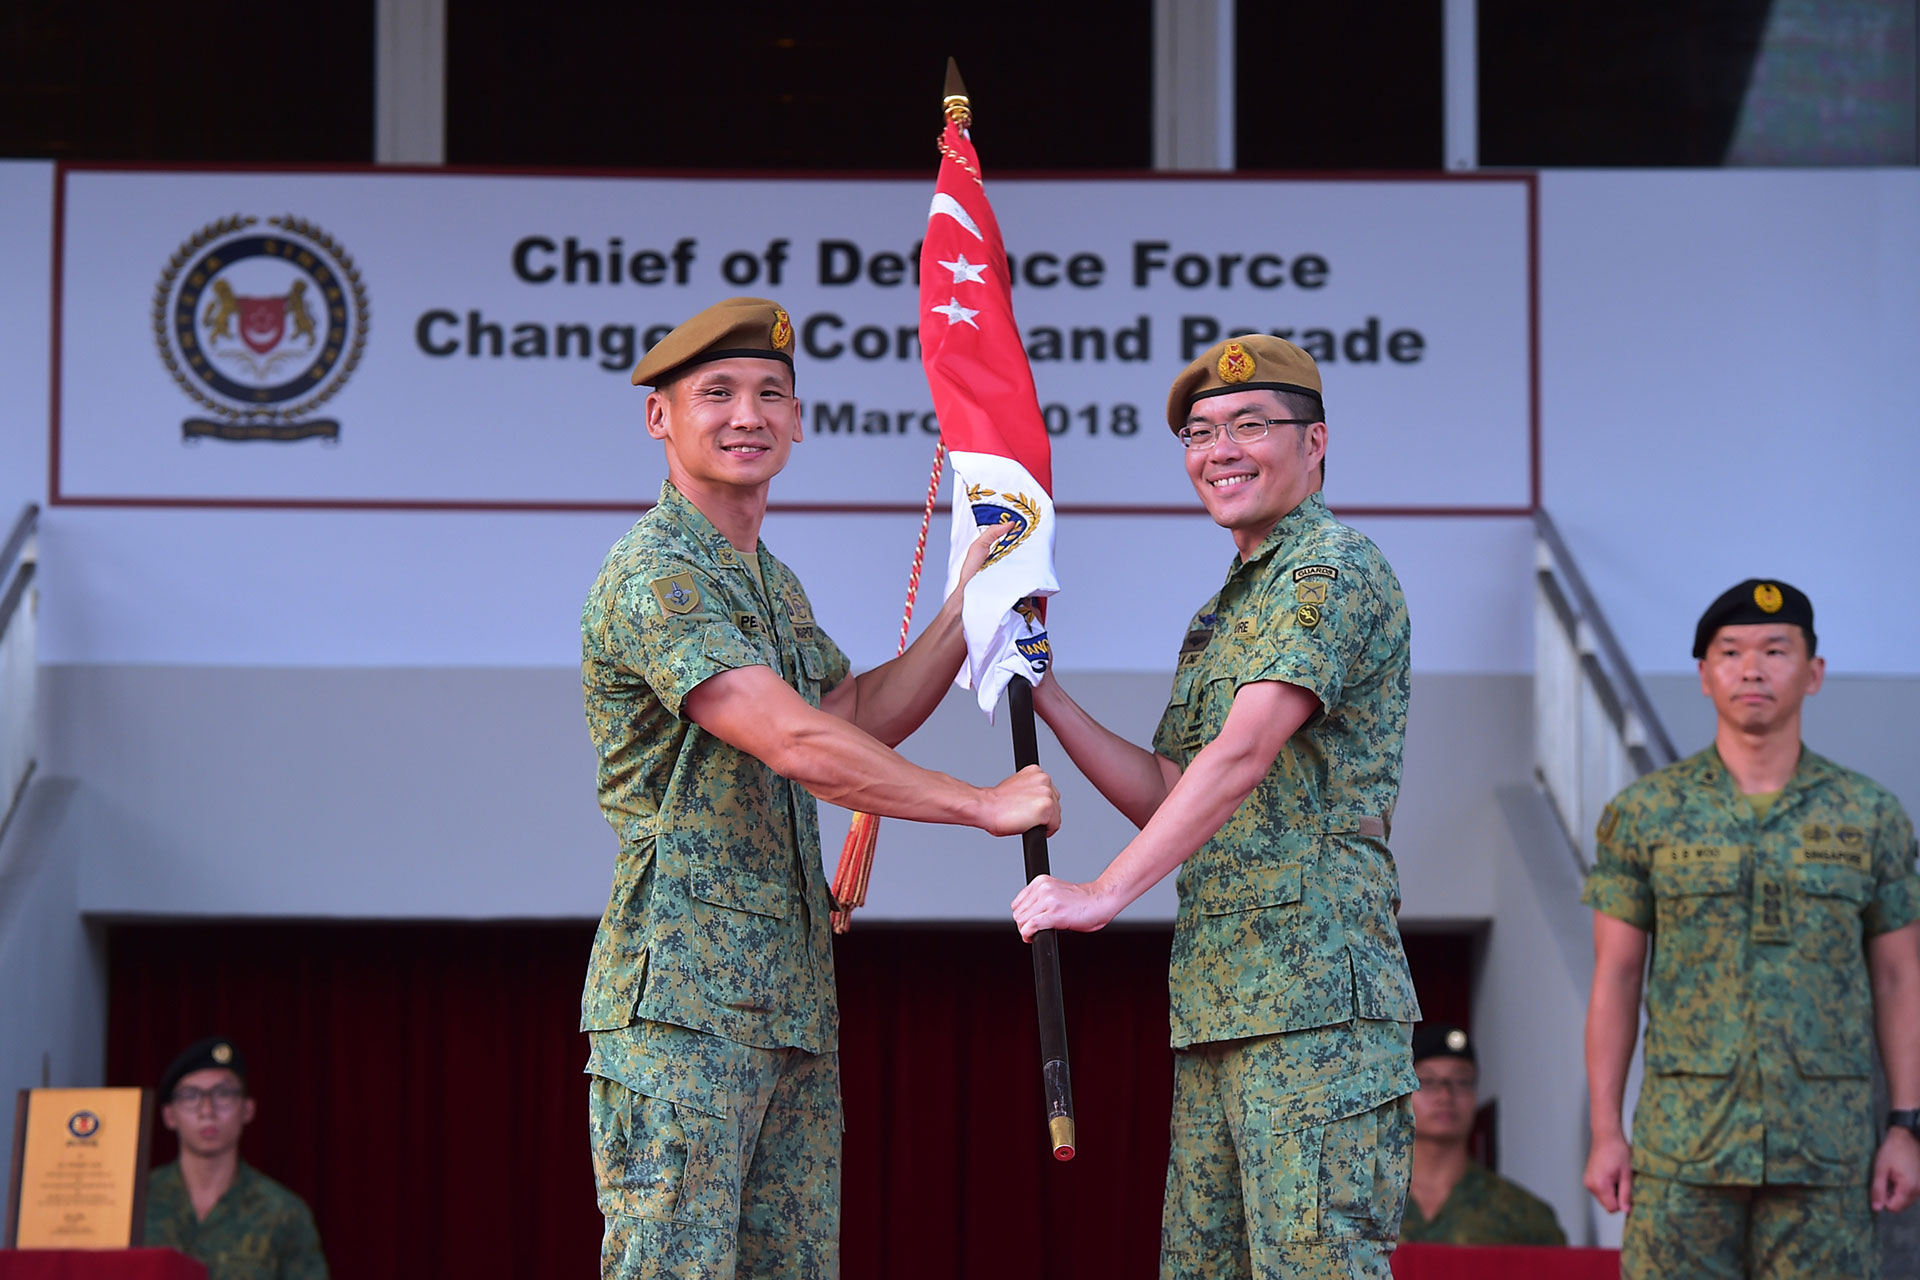 Outgoing Chief of Defence Force Lieutenant-General (LG) Perry Lim (left) handing over the command symbol to incoming Chief of Defence Force Major-General (MG) Melvyn Ong (right) at the Change of Command Parade held at SAFTI Military Institute.